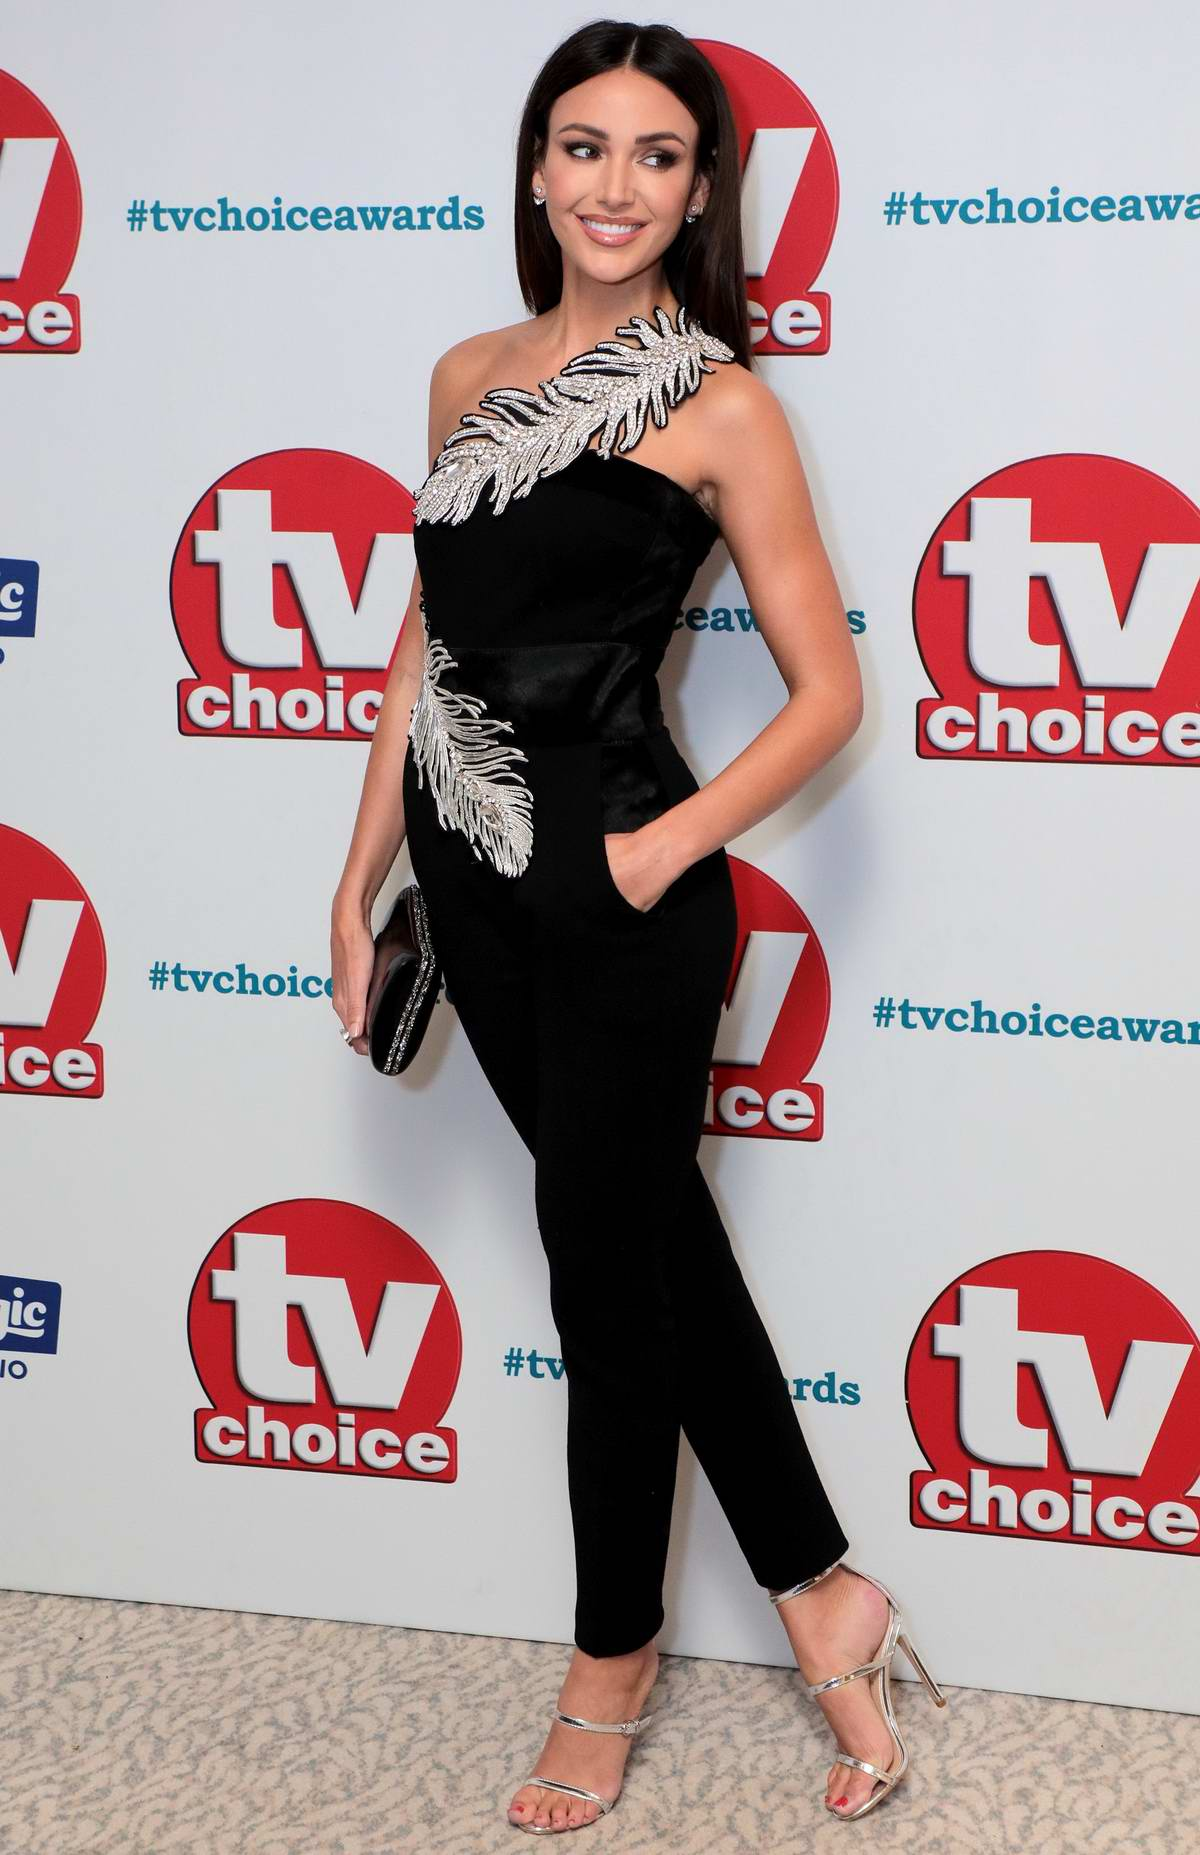 Michelle Keegan attends The TV Choice Awards 2018 at Dorchester Hotel in London, UK